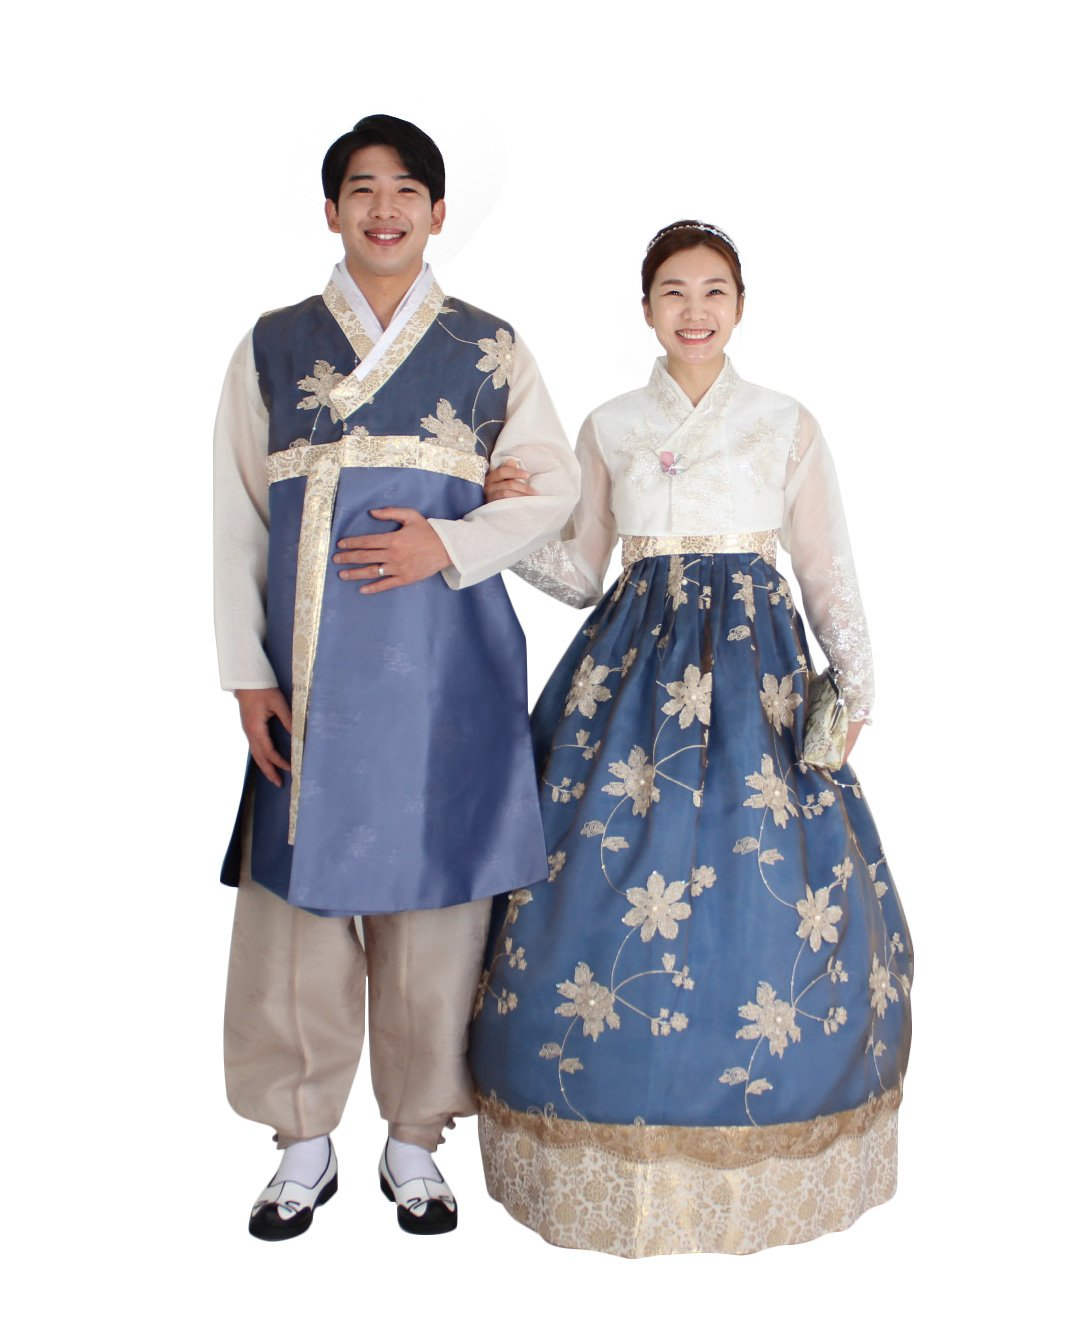 Hanbok Korea Traditional Costumes Women Men Couple Weddings Birthday Speical Ceremony co101 (55 (S) womens top)